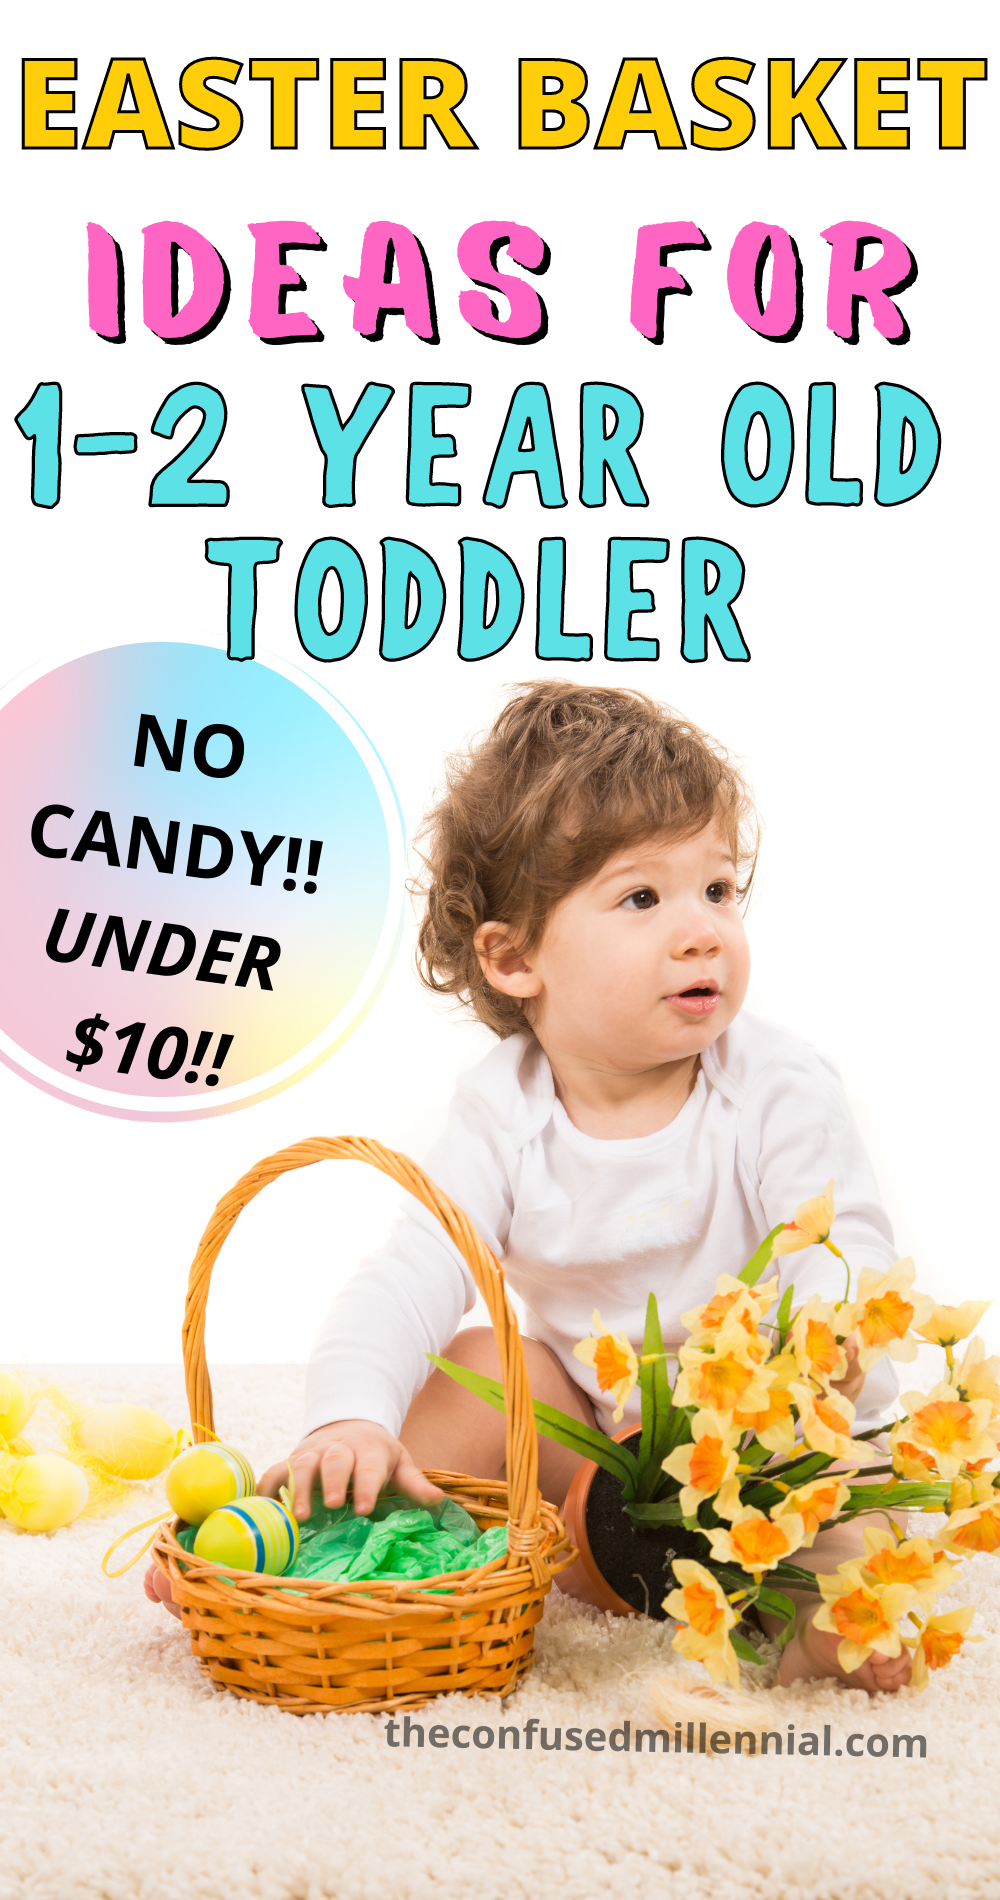 Dollar Tree Easter Basket For 2 Year Old Toddler No Candy The Confused Millennial In 2021 Easter Baskets For Toddlers Easter Baskets Toddler Easter